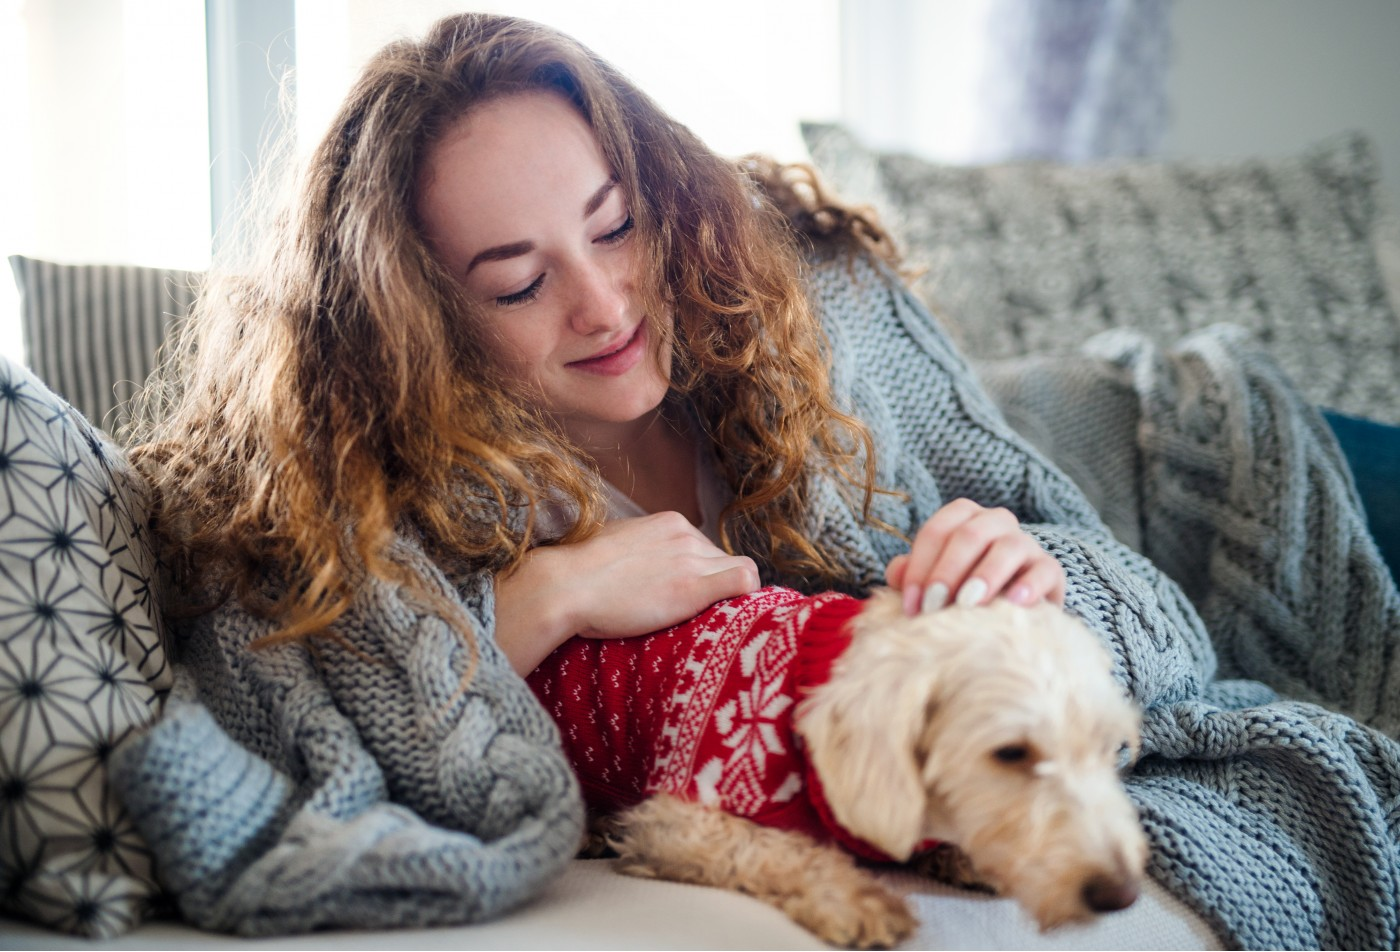 Young woman relaxing indoors on sofa at home with pet dog